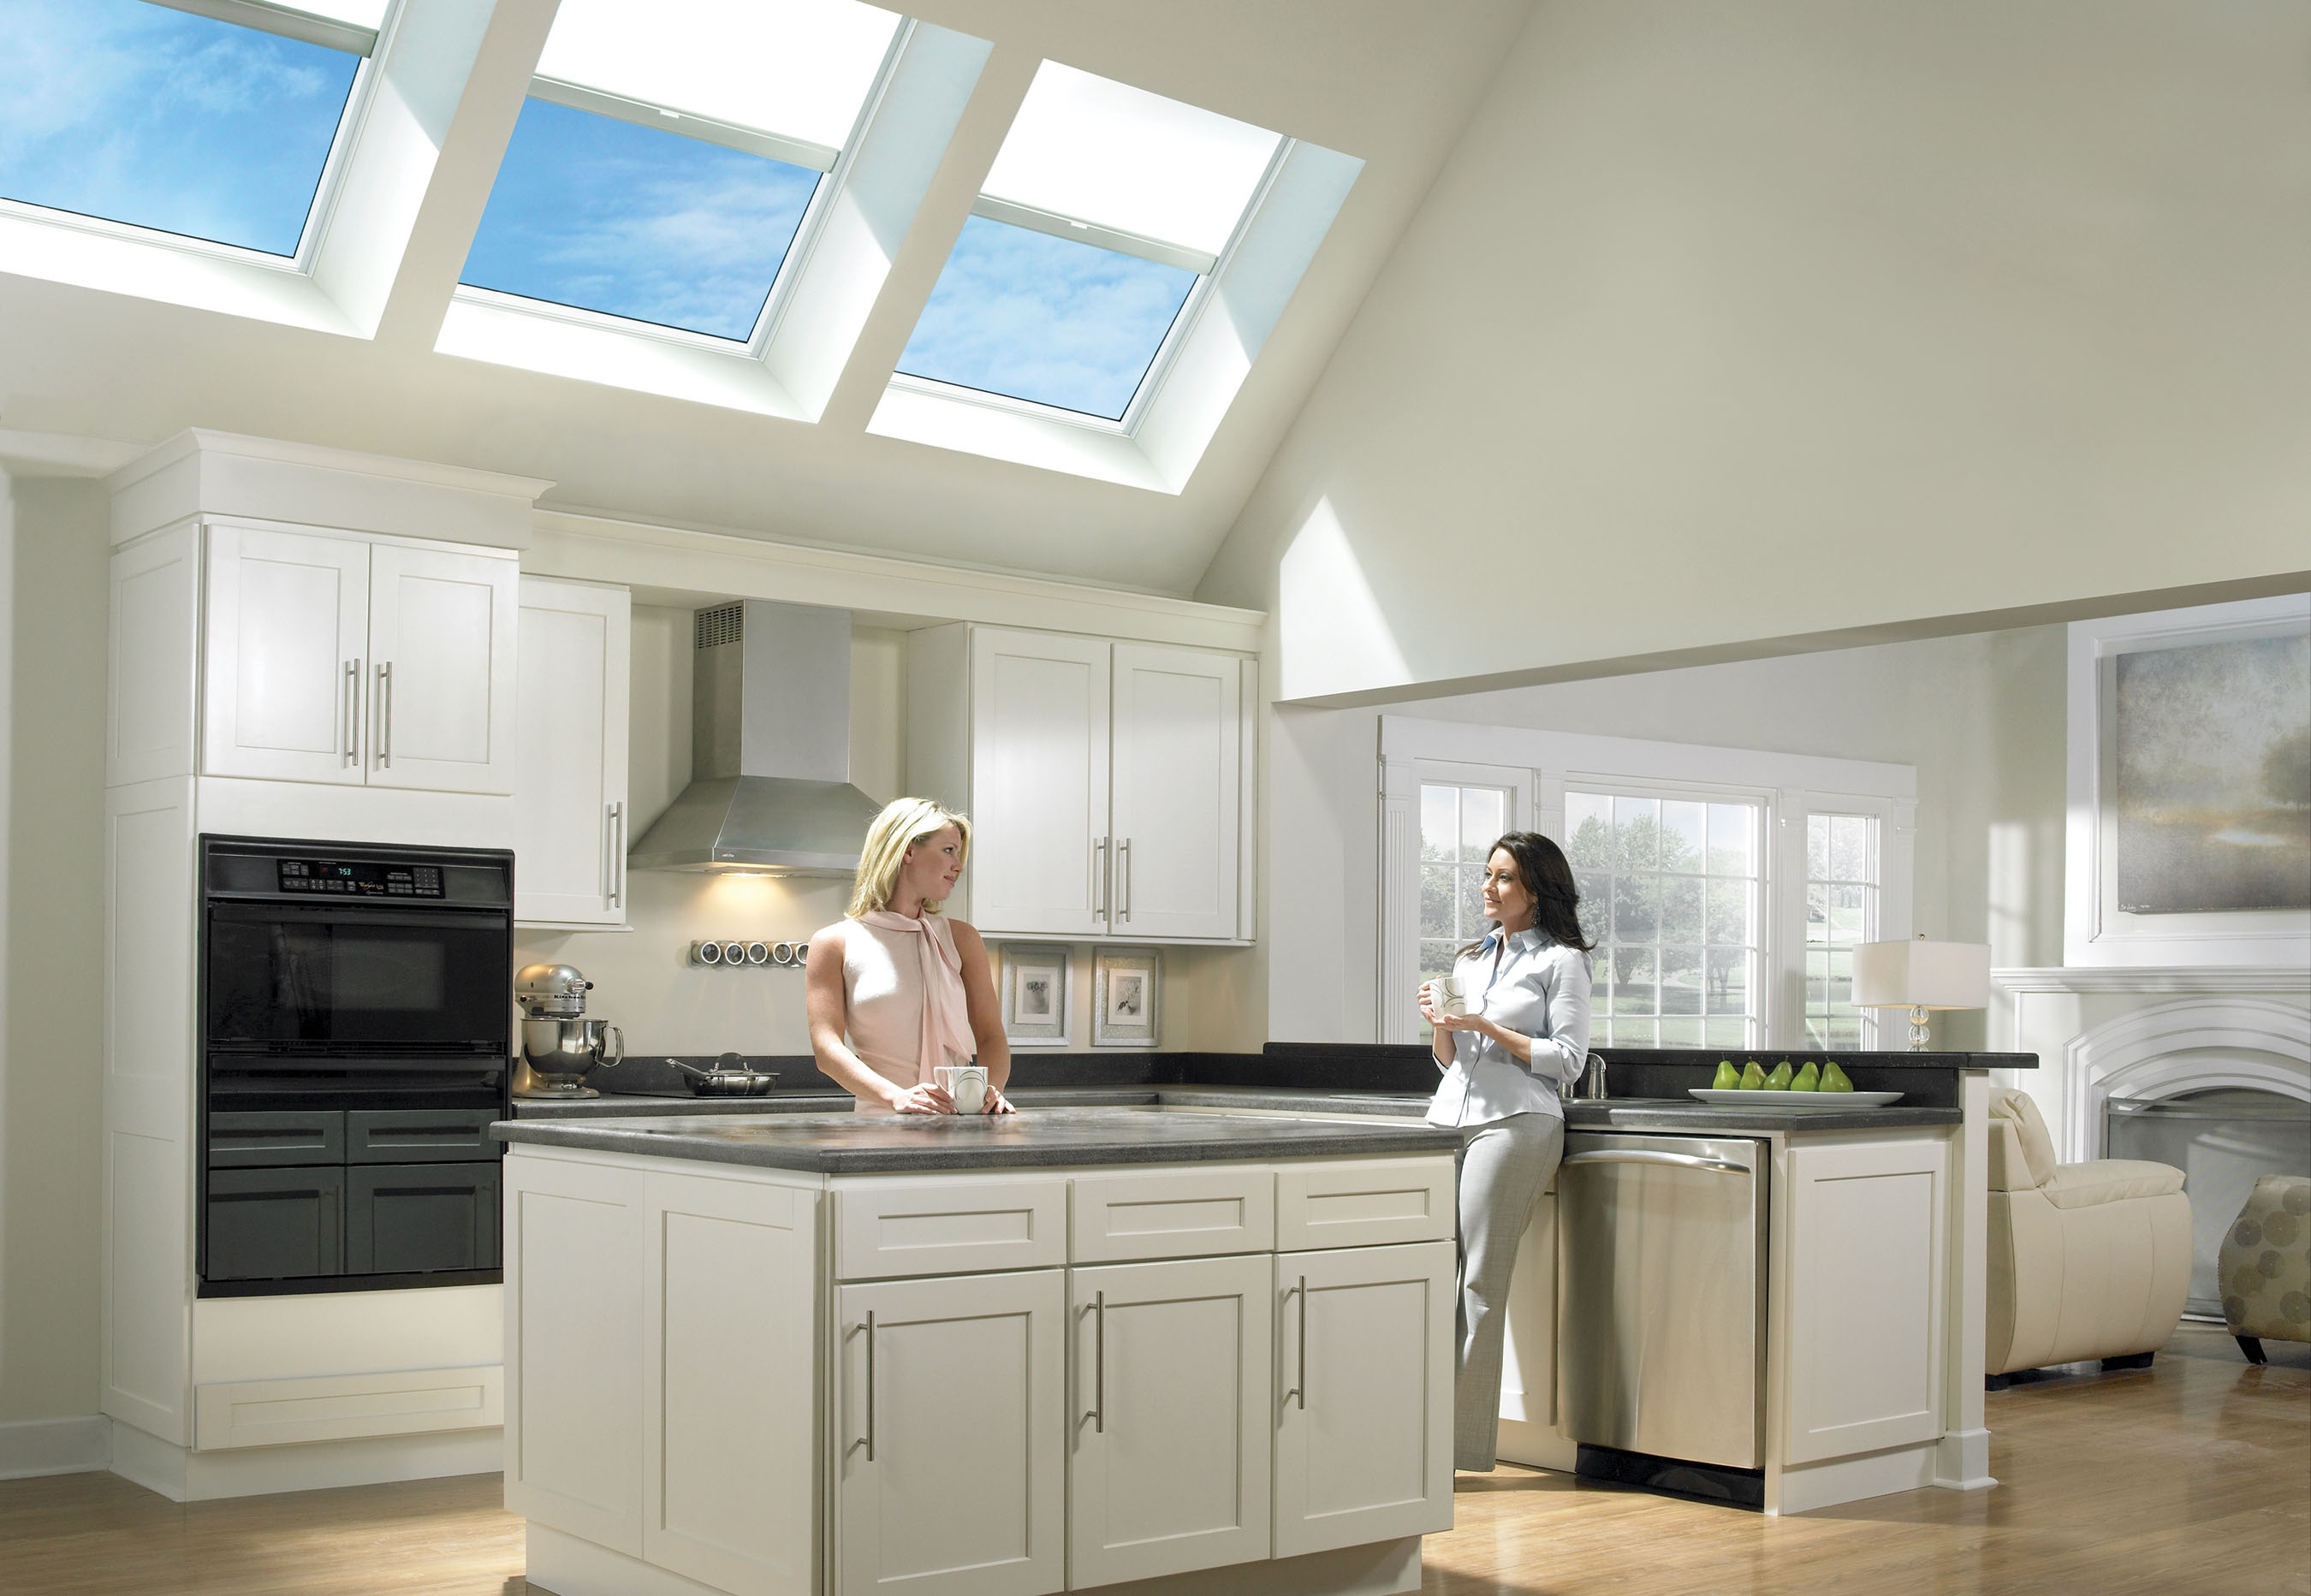 Marvin Skylights From Century Building Materials of Long Island